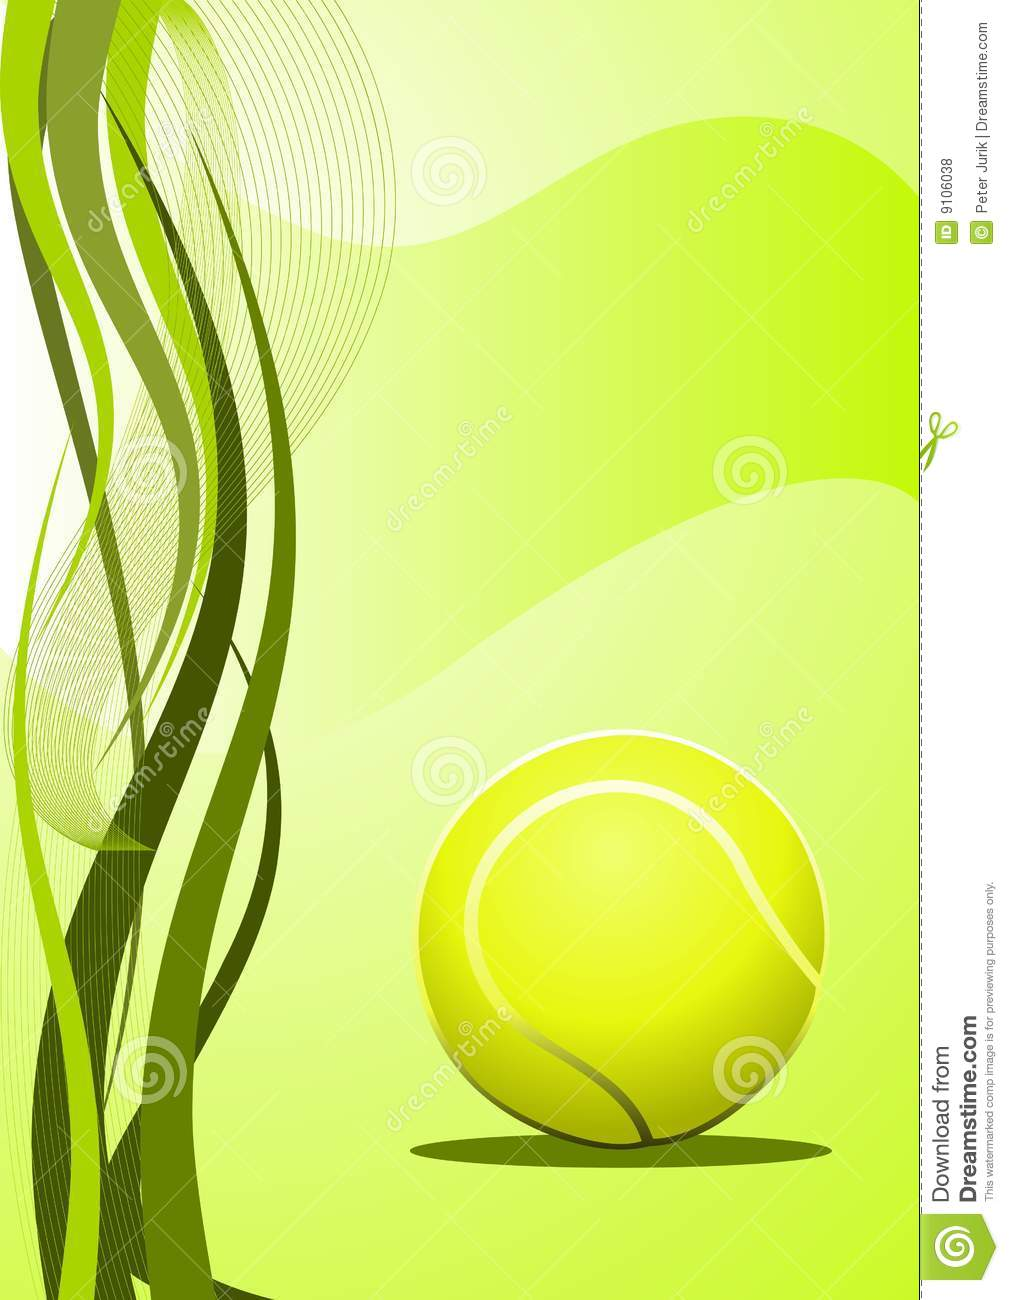 Permalink to Free Tennis Background Images